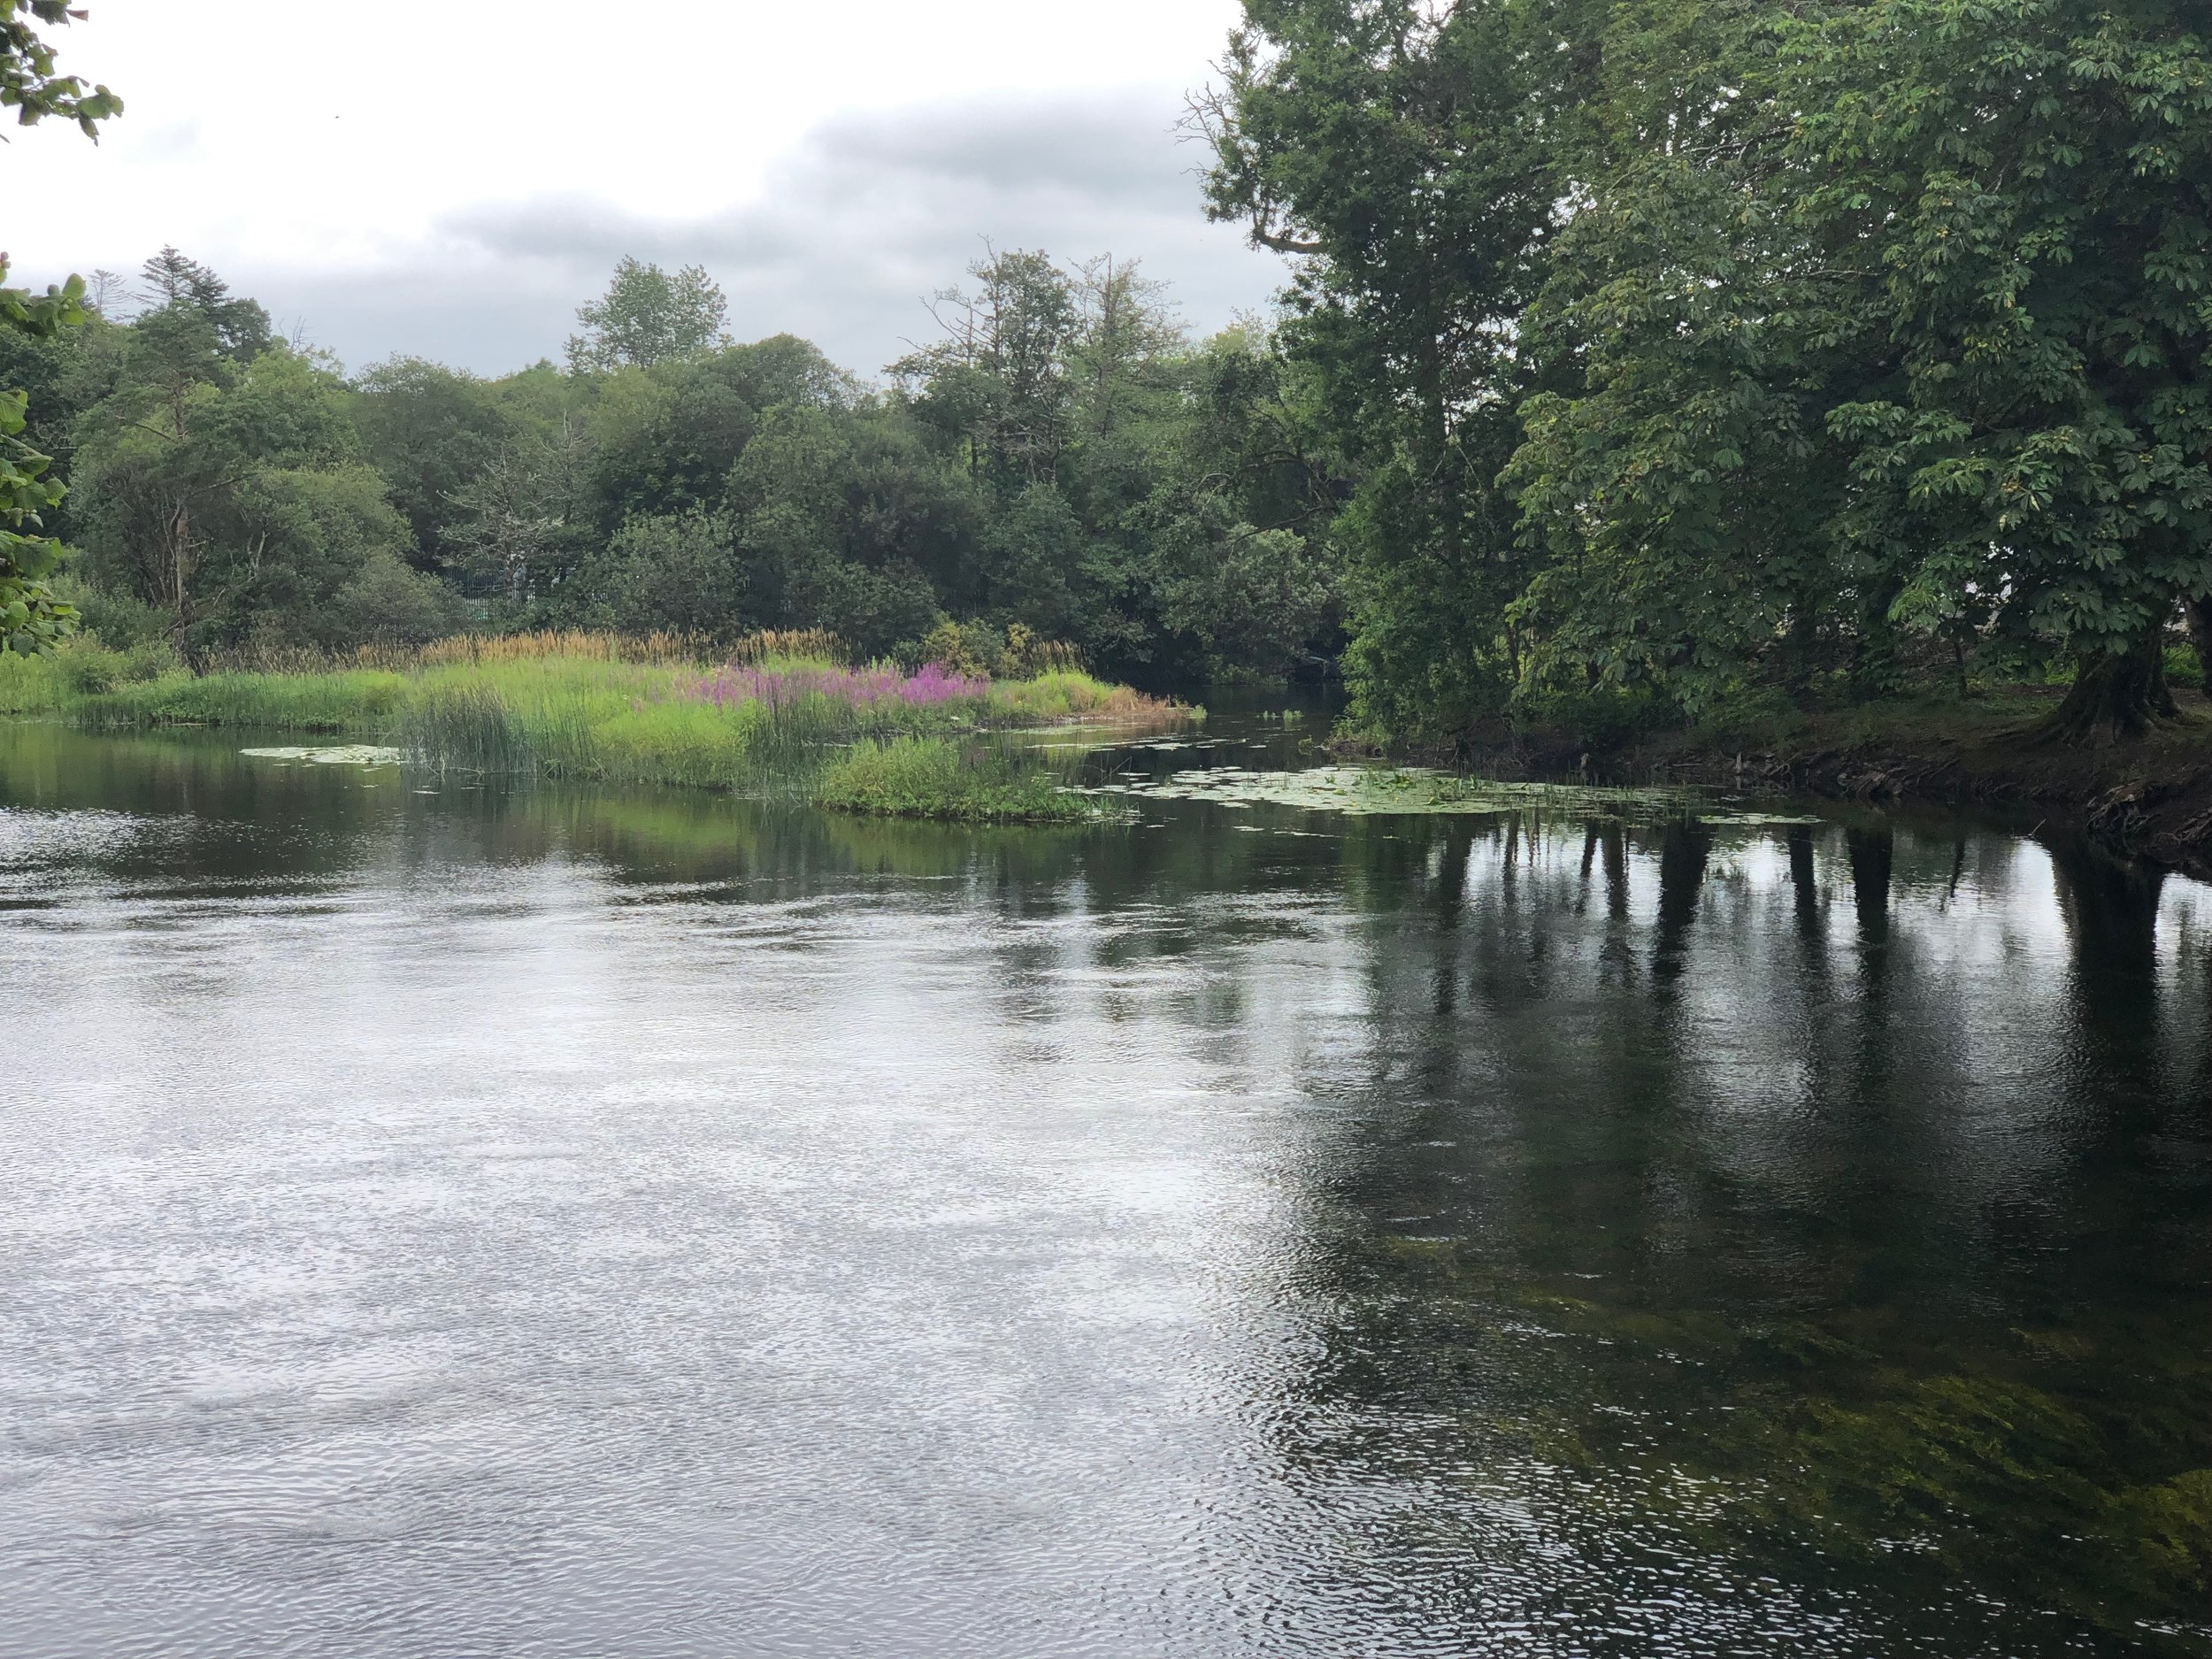 A picture perfect river near the town of Cong.